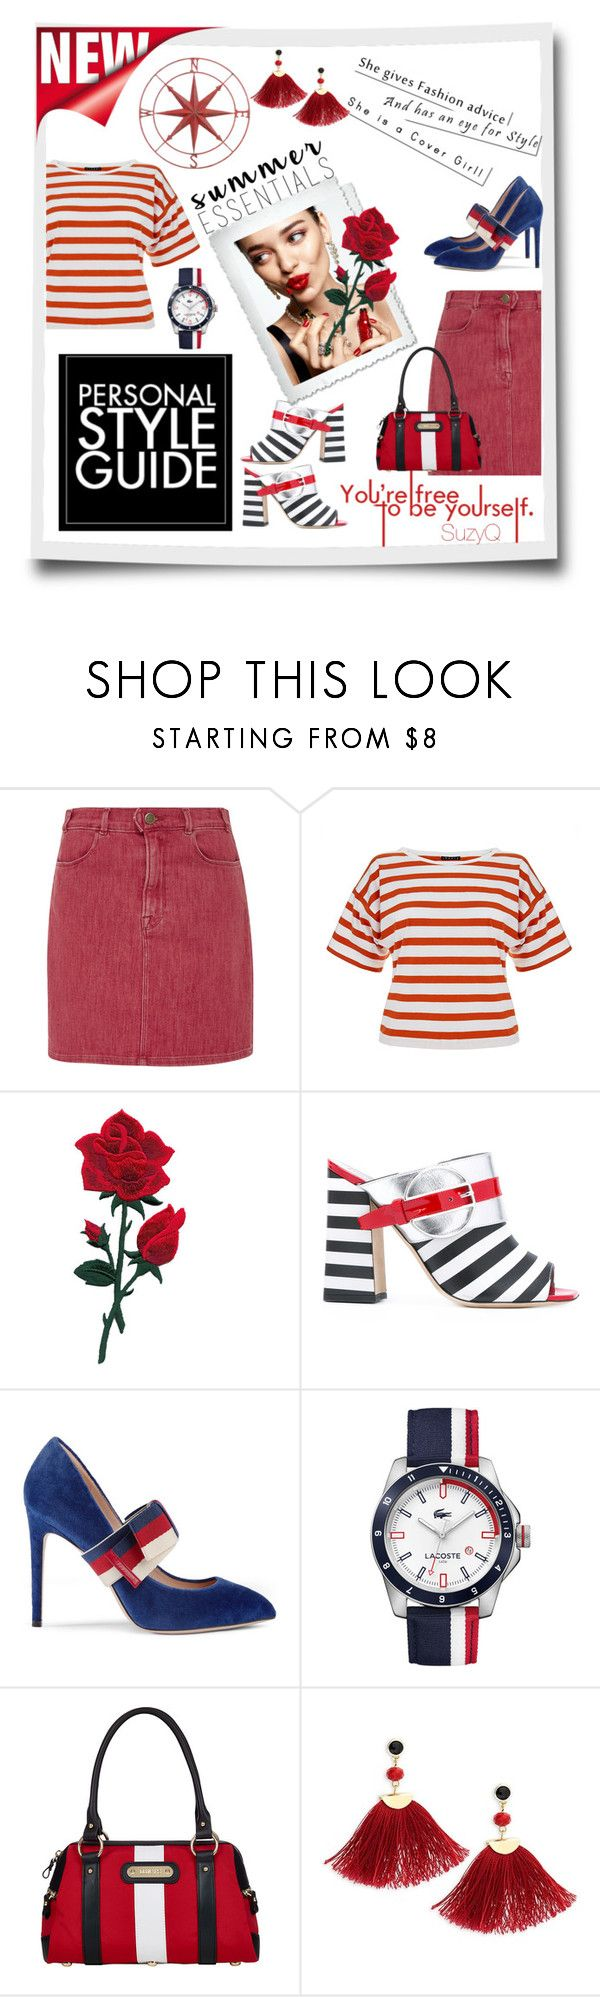 """AN EYE FOR STYLE"" by polyvore-suzyq ❤ liked on Polyvore featuring Guide London, KAROLINA, Frame, Theory, Pollini, Gucci, Lacoste, Davey's, Shashi and Home Decorators Collection"